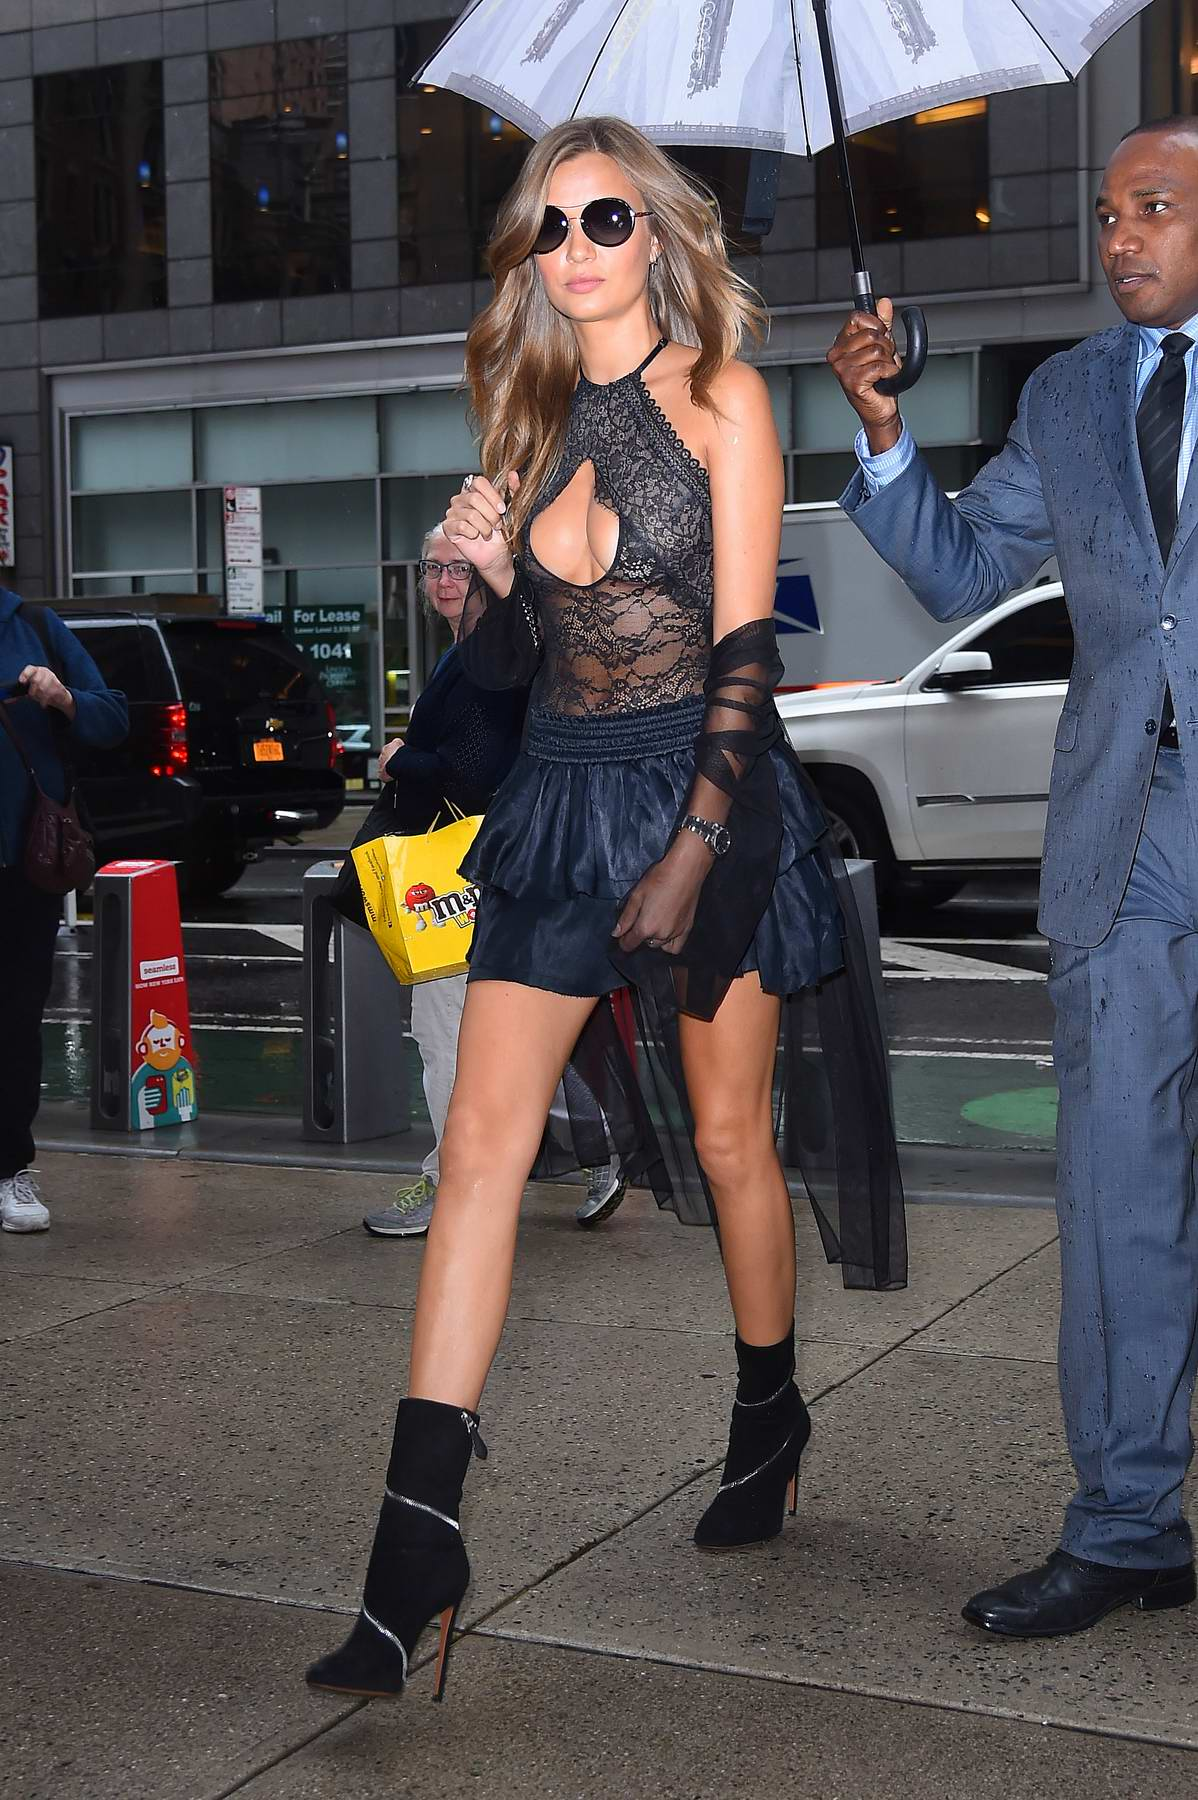 Josephine Skriver arrives for the Victoria's Secret fashion show fittings in New York